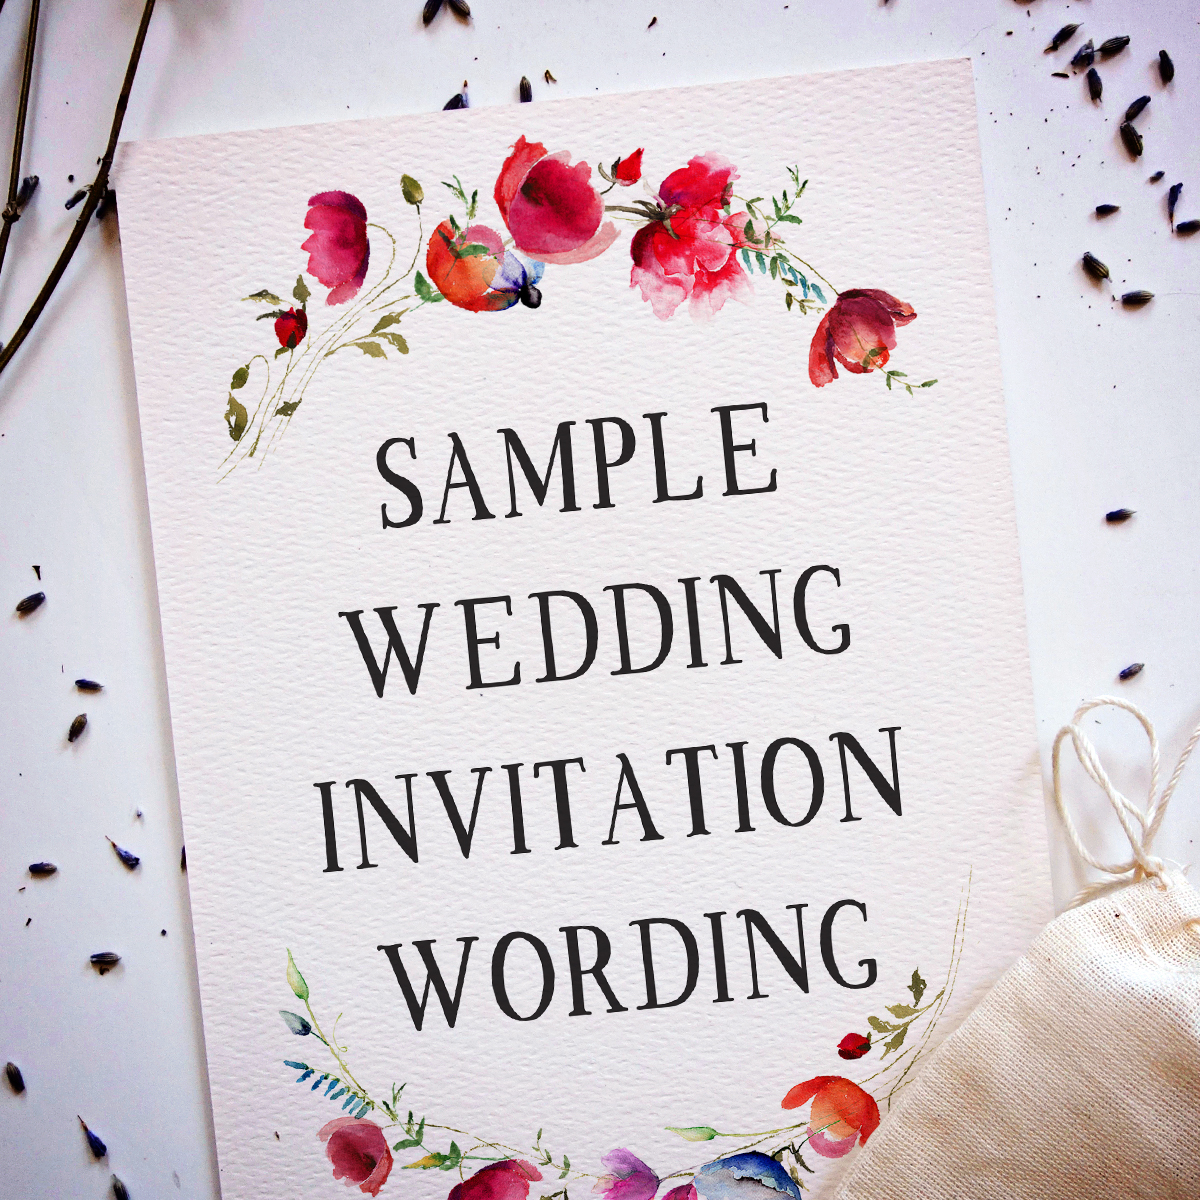 Wedding Wording Samples And Ideas For Indian Invitations